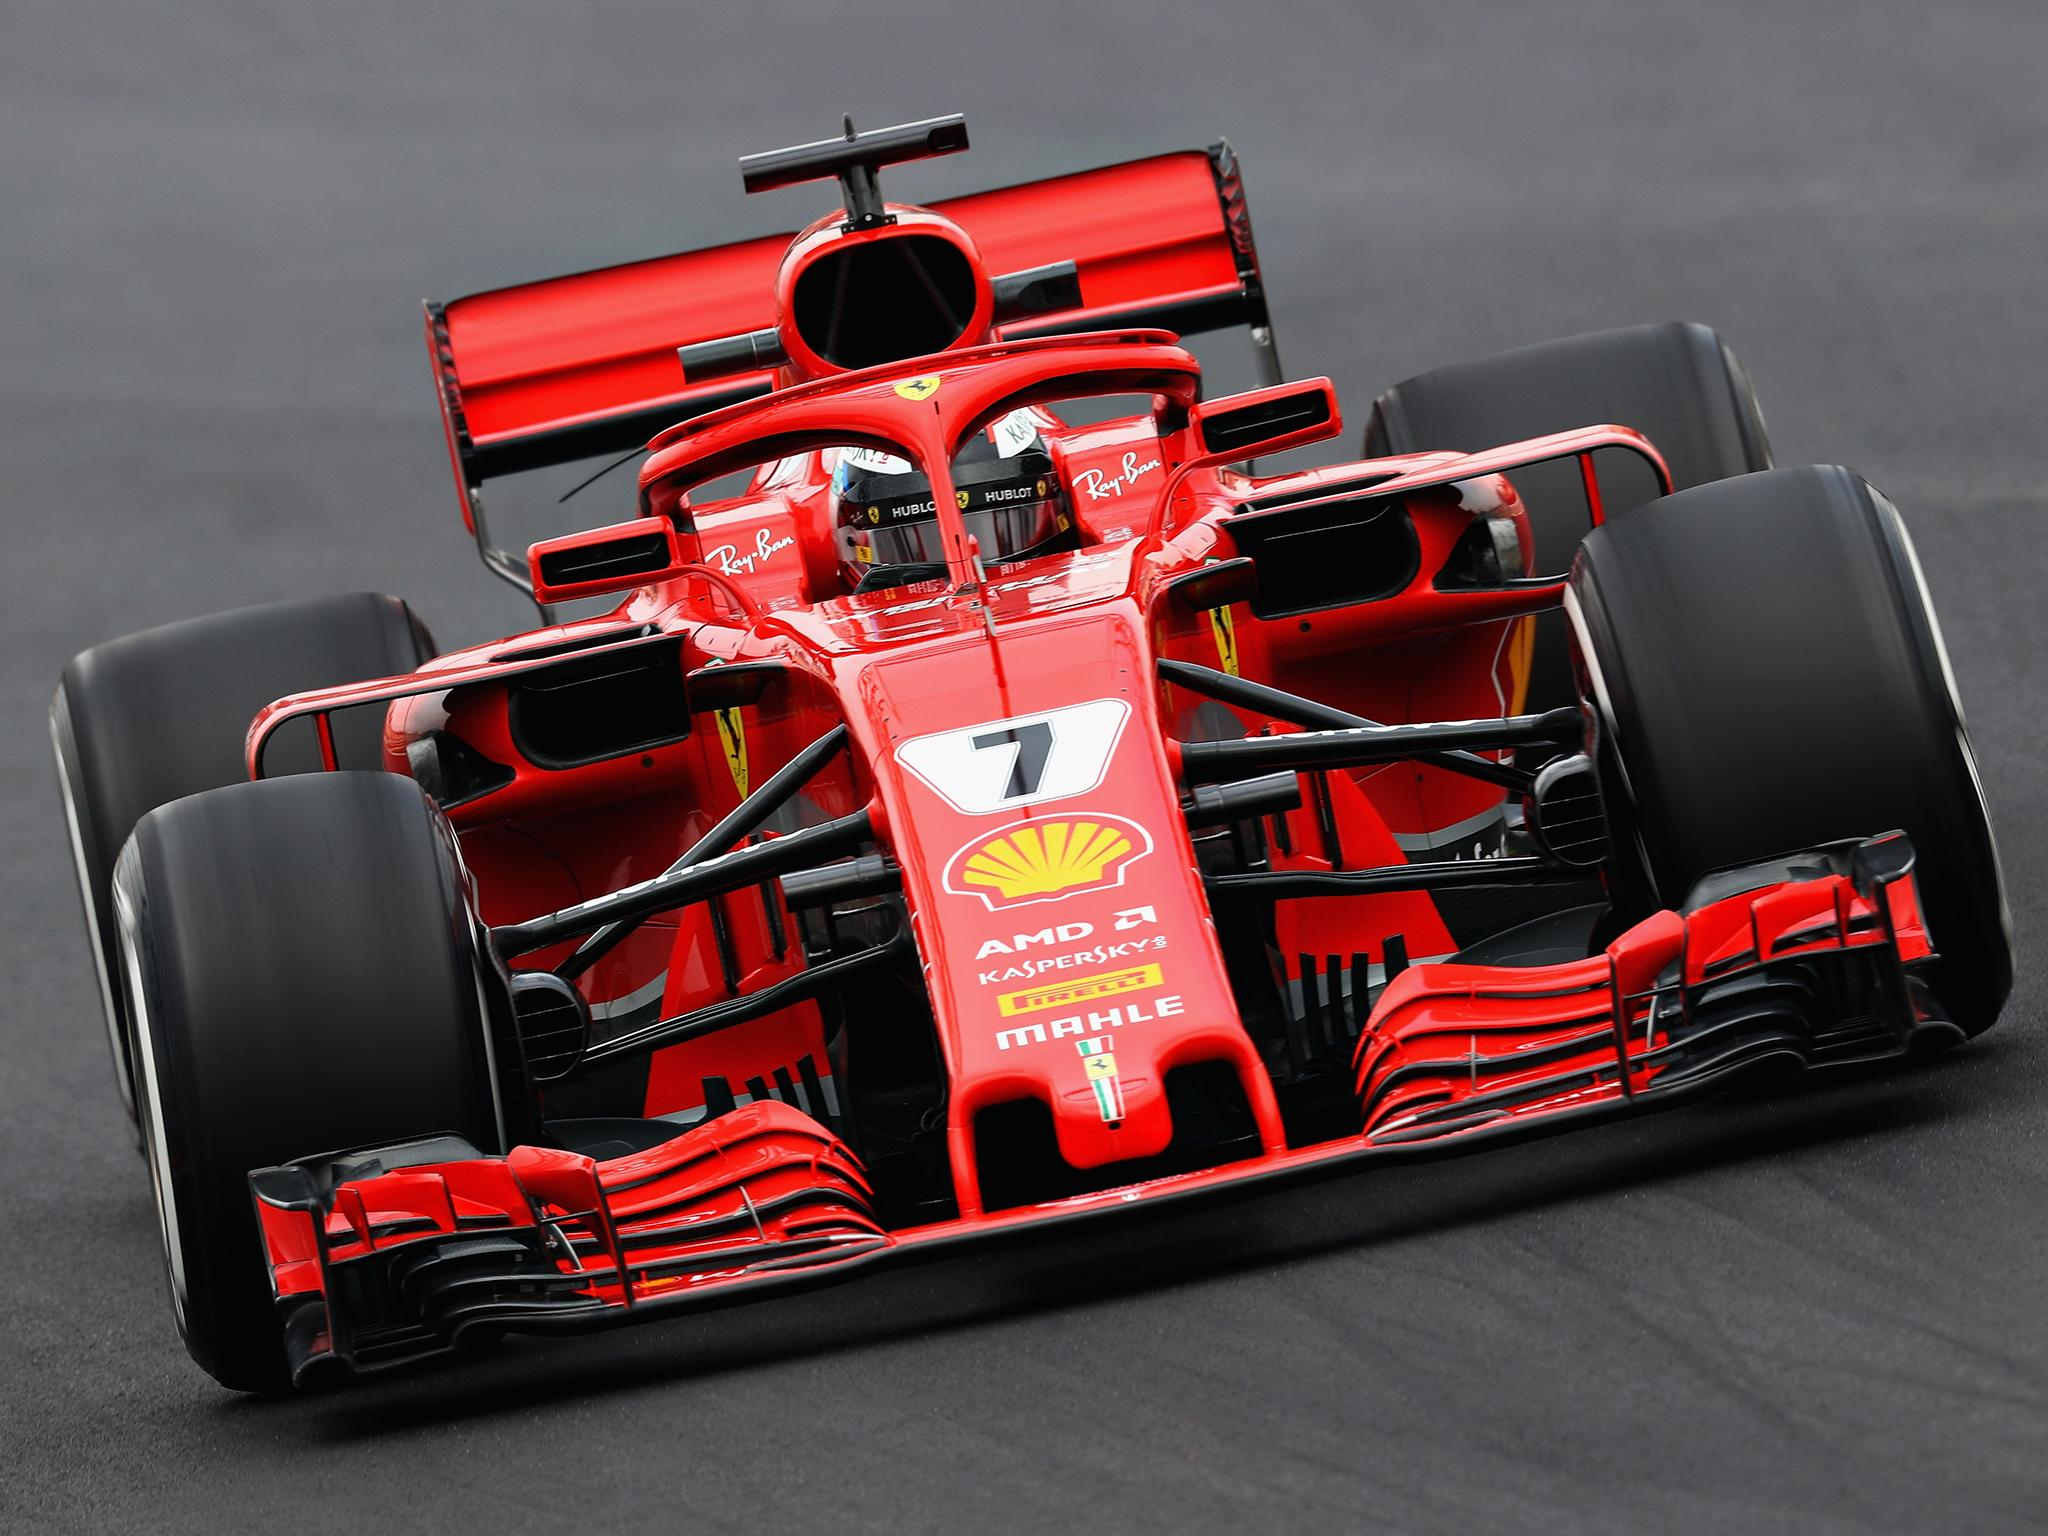 Latest F1 global viewing figures reveal 1 3bn watched first 15 races